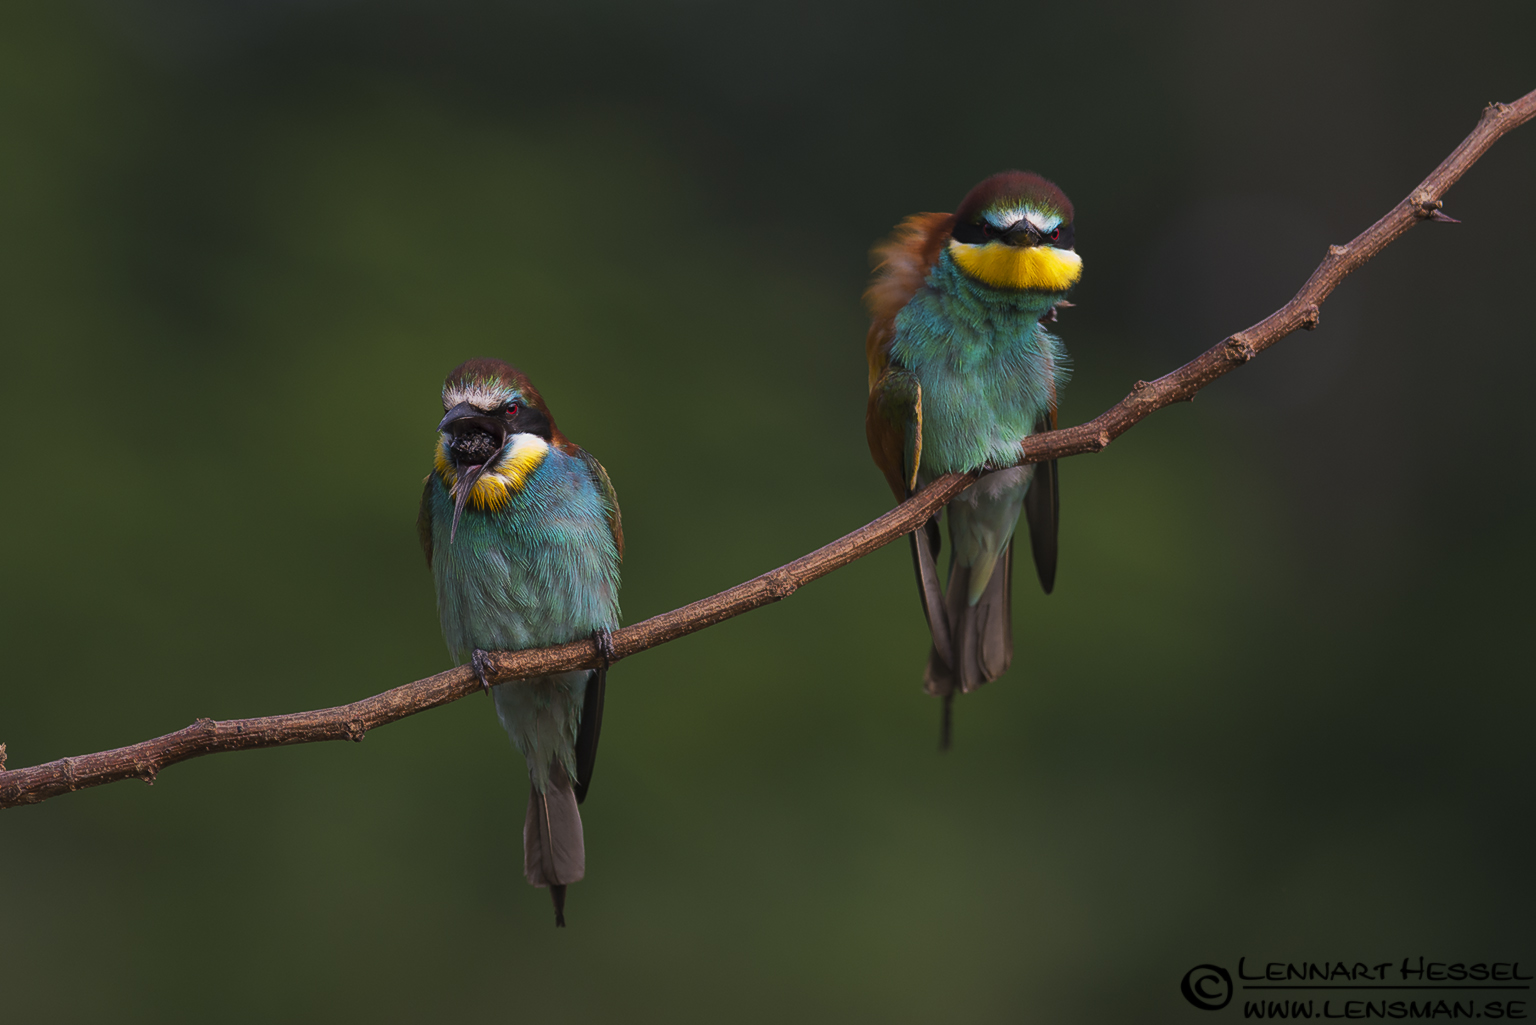 European Bee-eaters in Hungary